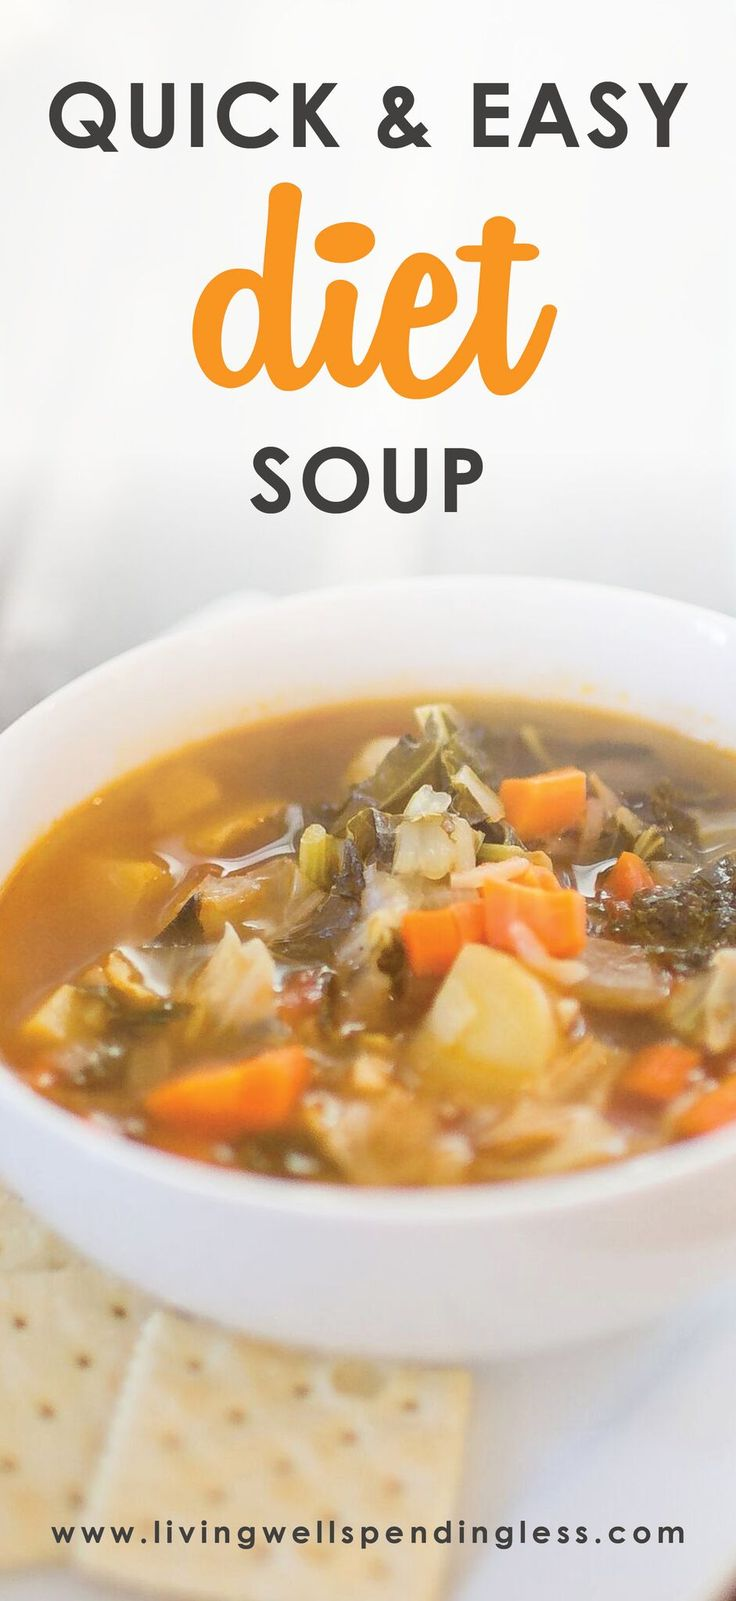 Winter Diet Soup Recipe | Healthy Winter Soup | Slimming Soups | Fat-Burning Soups | Winter Weight Loss Soup⎢Quick and Easy Recipes   via @lwsl